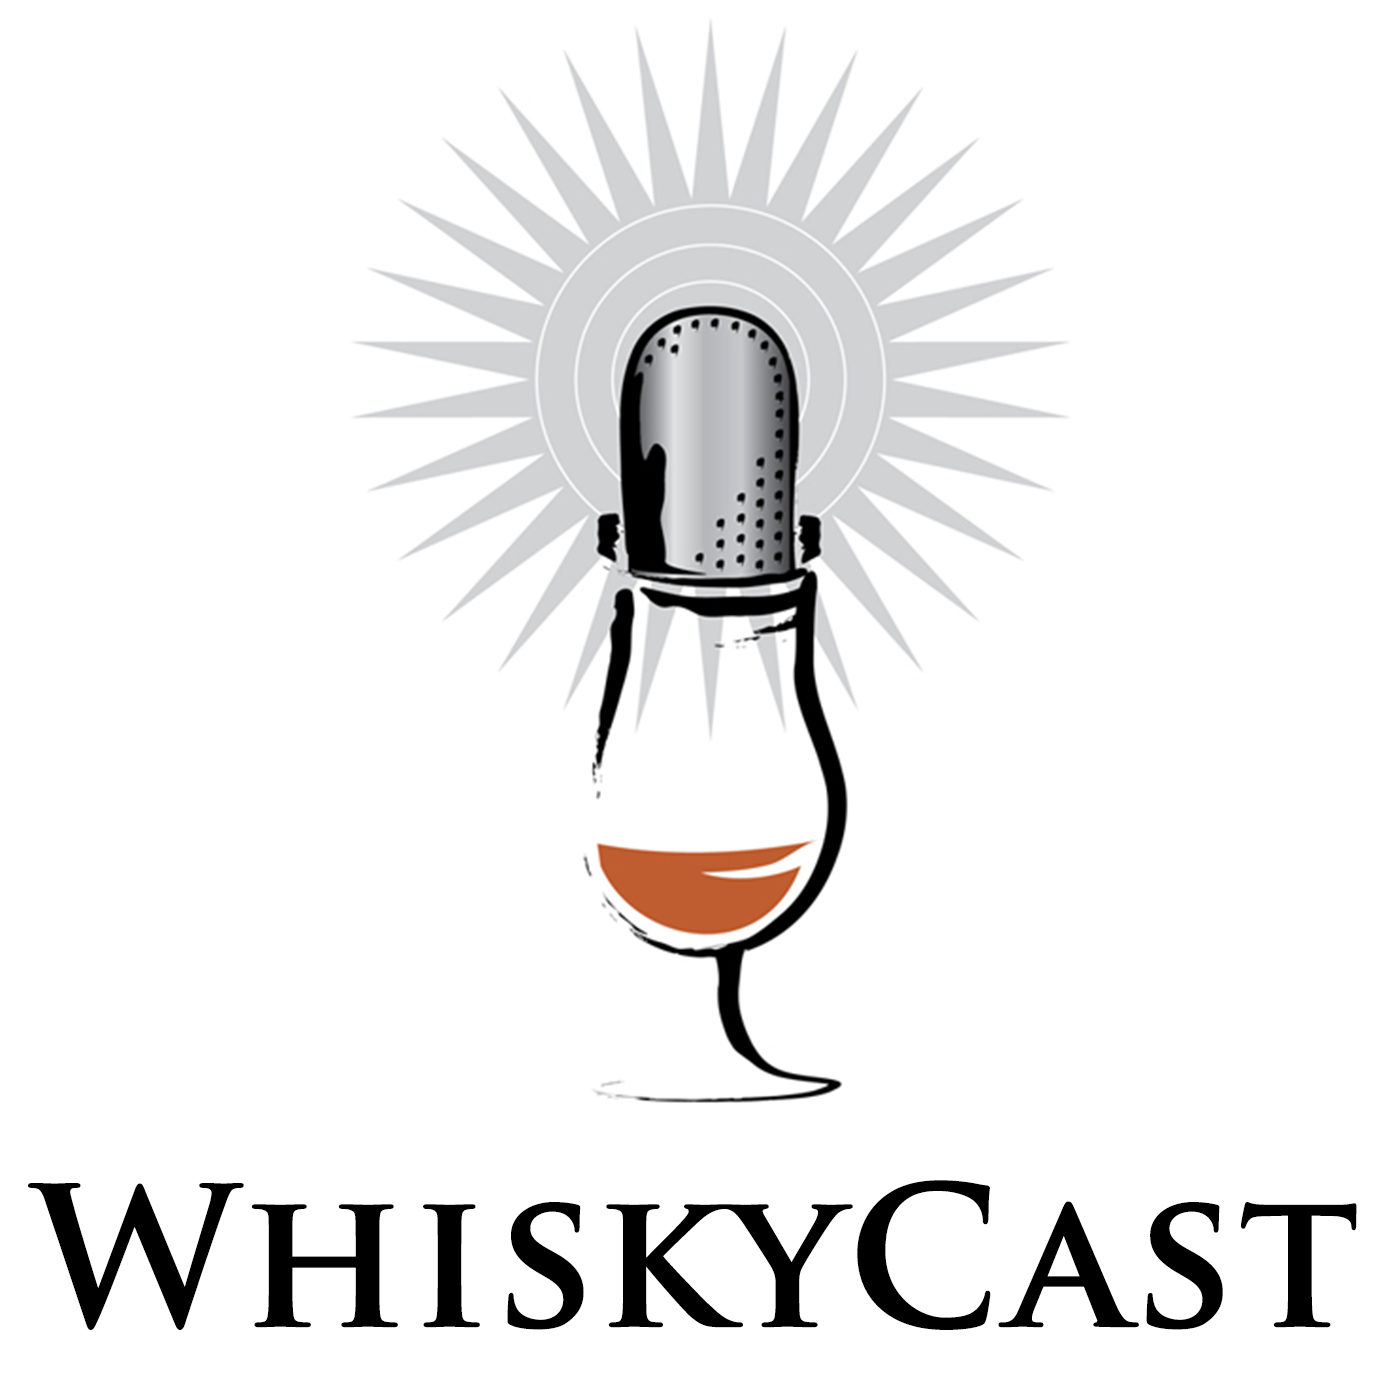 WhiskyCast Episode 433: July 13, 2013